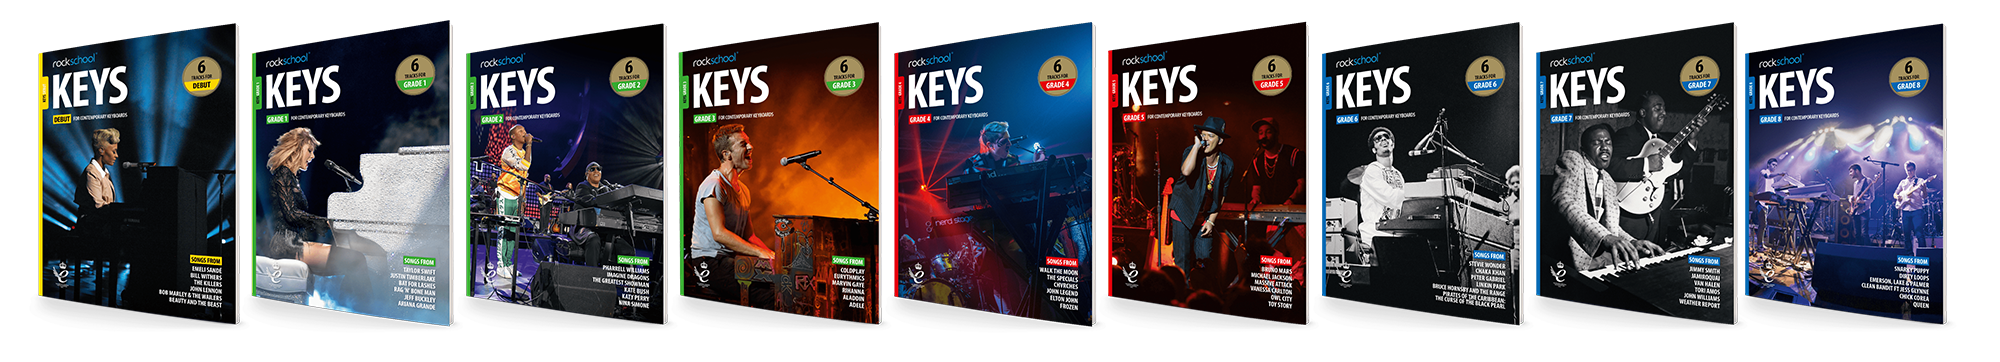 Rockschool Keys Book Covers